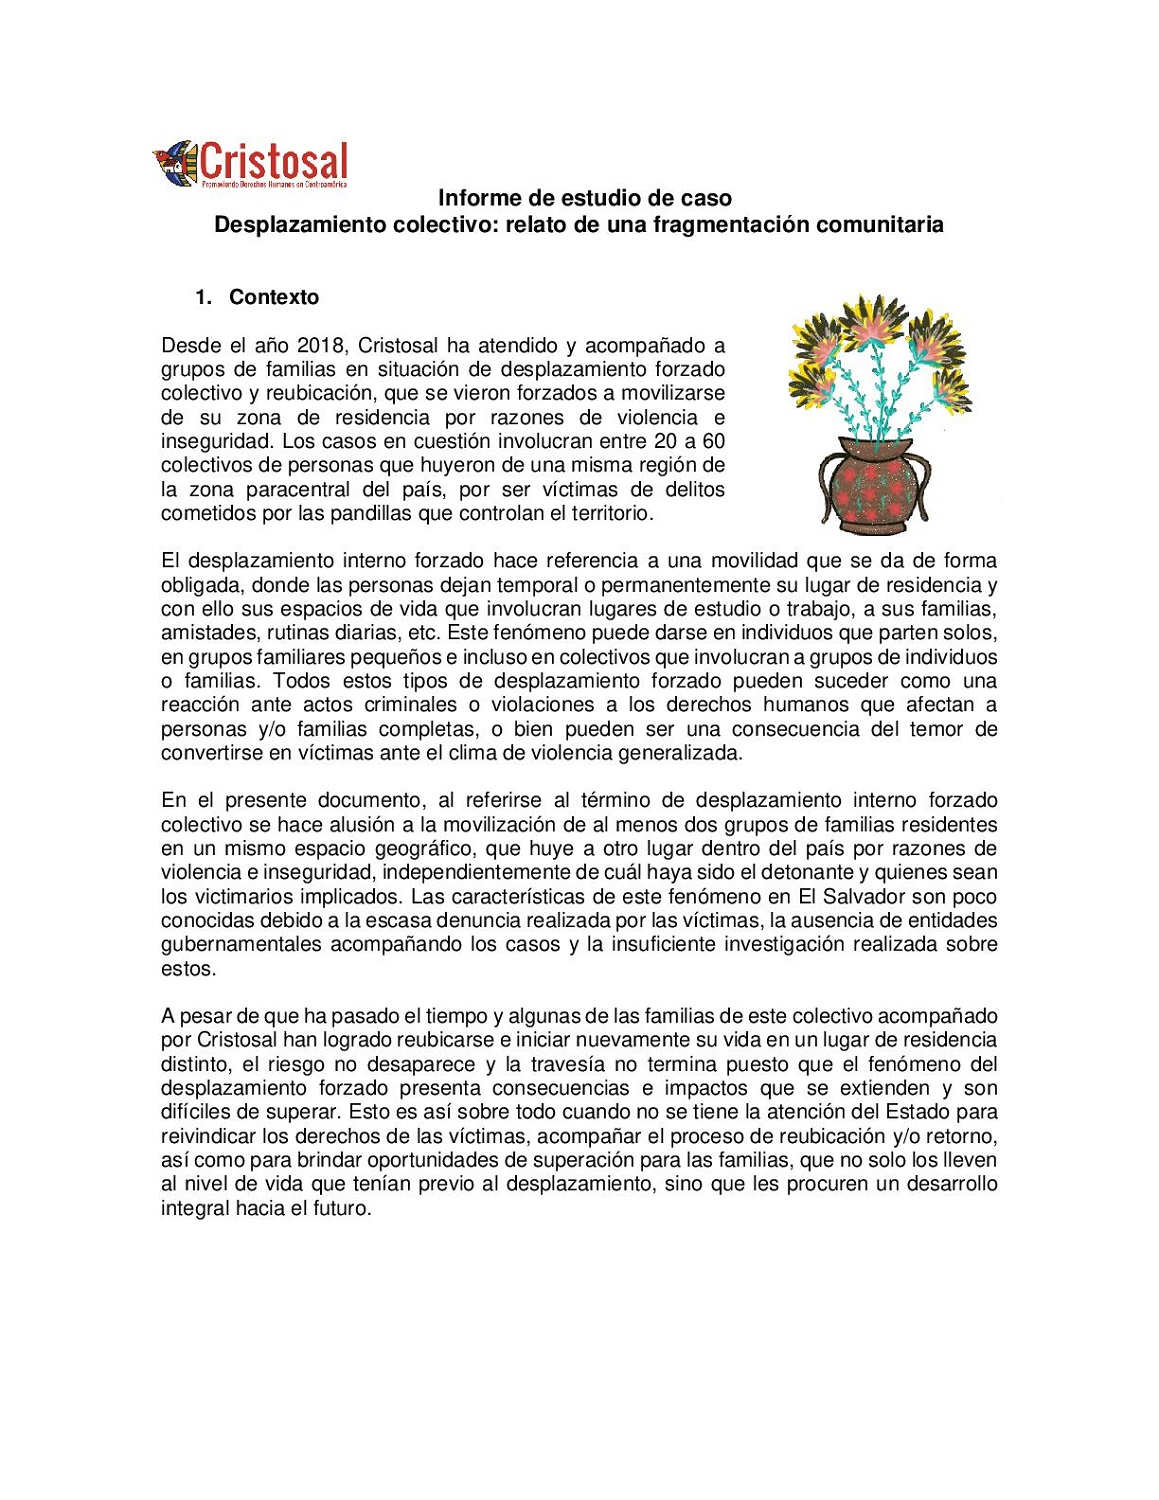 Collective displacement: An account of community fragmentation (spanish)